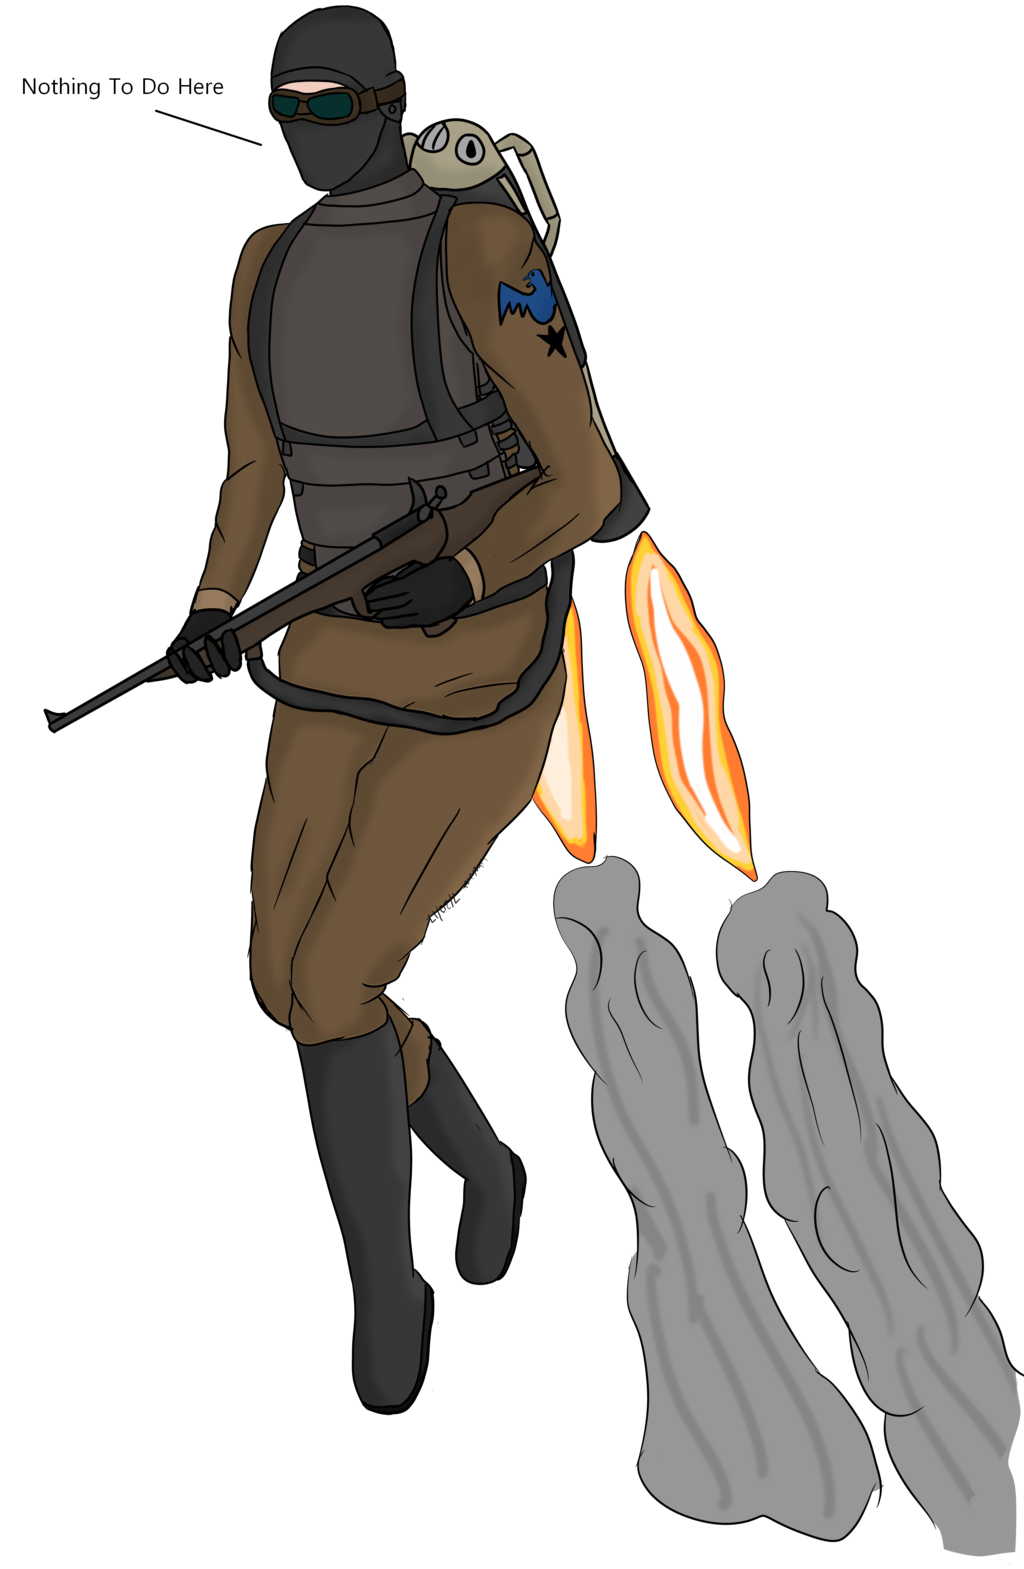 Airship drawing fictional. Jump trooper concept by